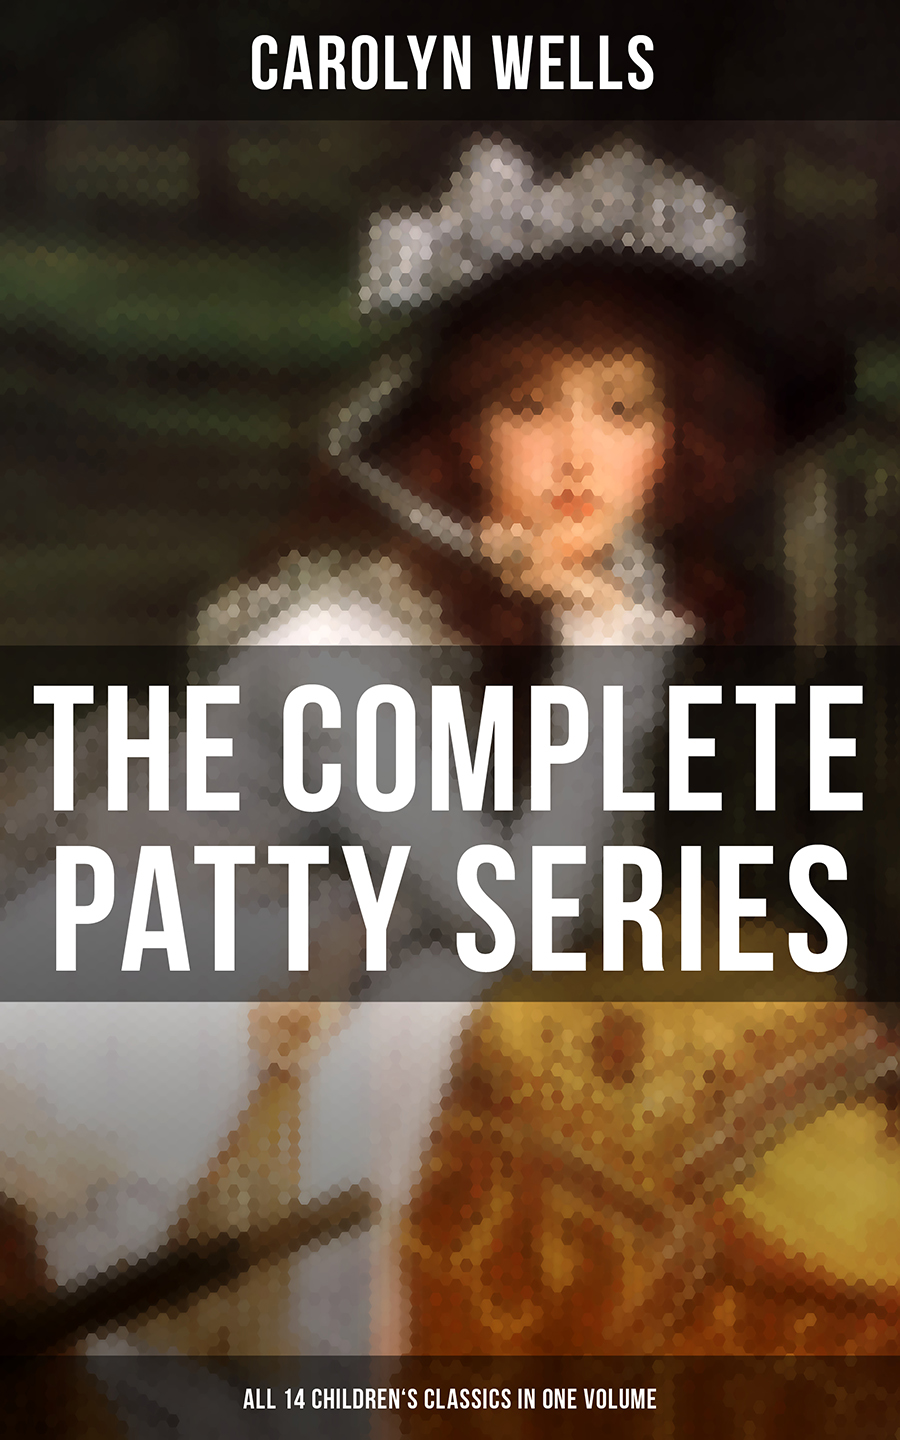 Carolyn Wells The Complete Patty Series (All 14 Children's Classics in One Volume) patty salier the sex test